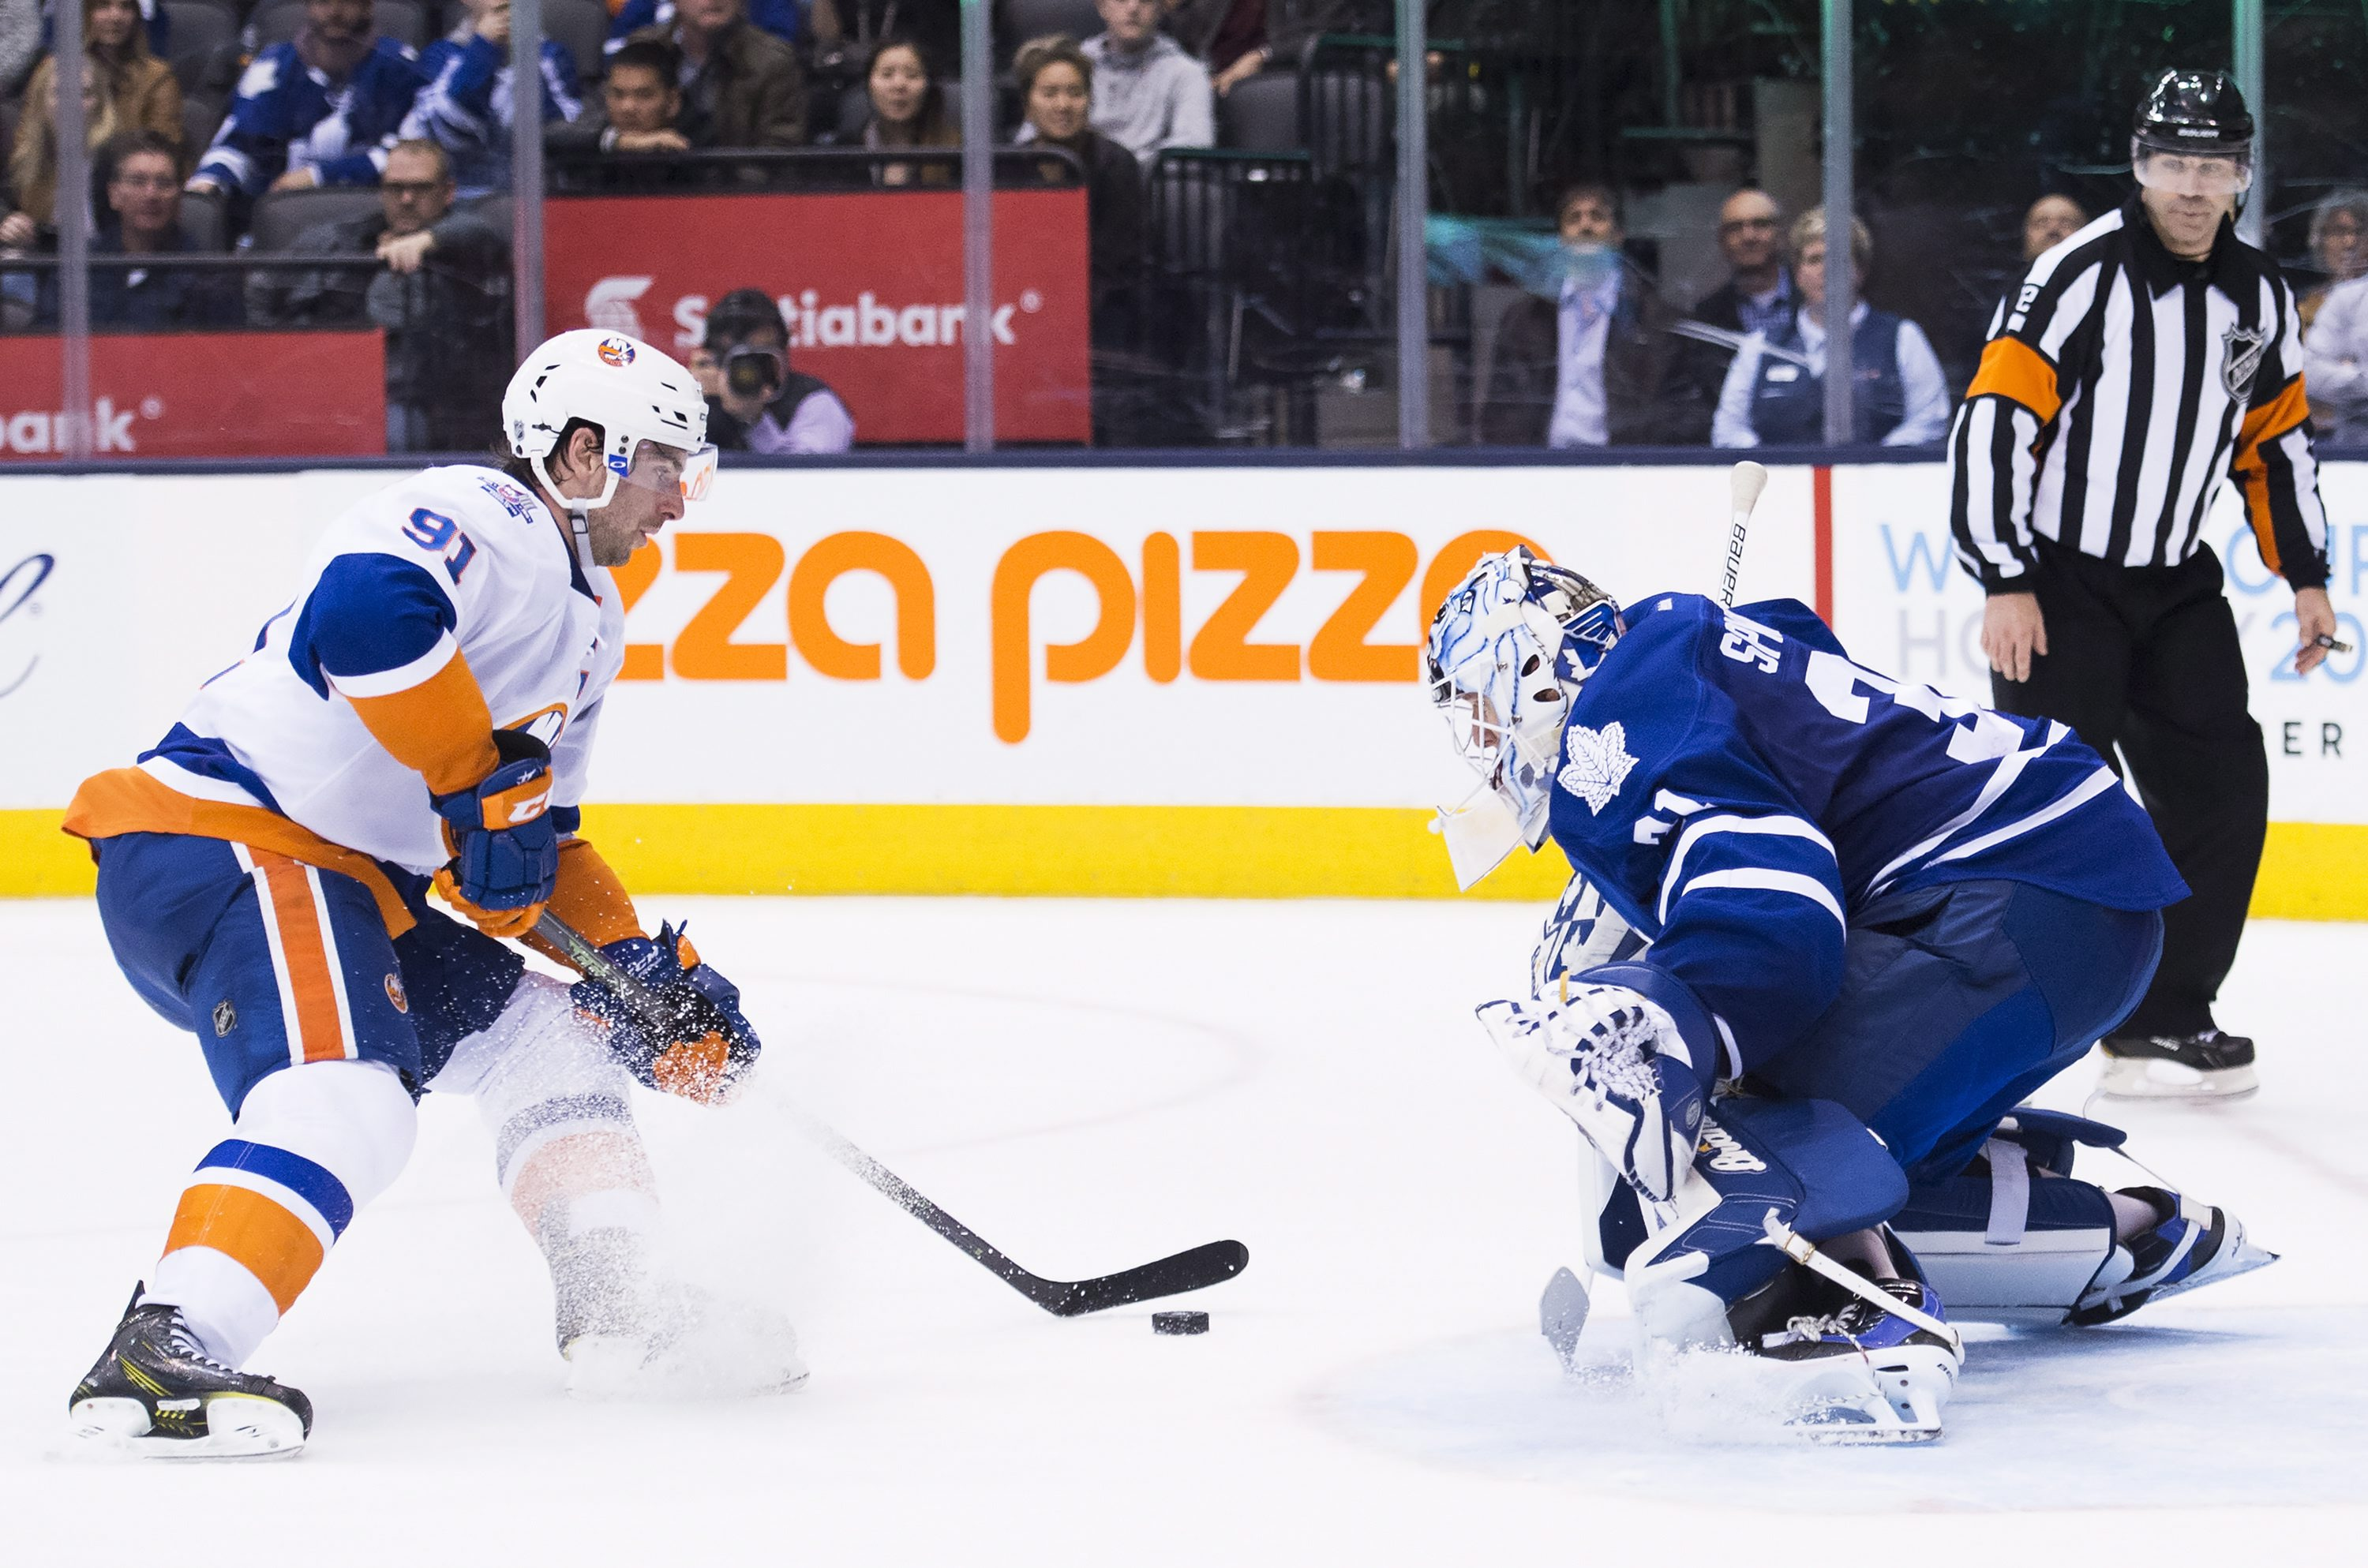 Toronto Maple Leafs goalie Garret Sparks (31) stops New York Islanders center John Tavares (91) in a shoot out during an NHL hockey game in Toronto, Wednesday, March 9, 2016. (Nathan Denette/The Canadian Press via AP) MANDATORY CREDIT